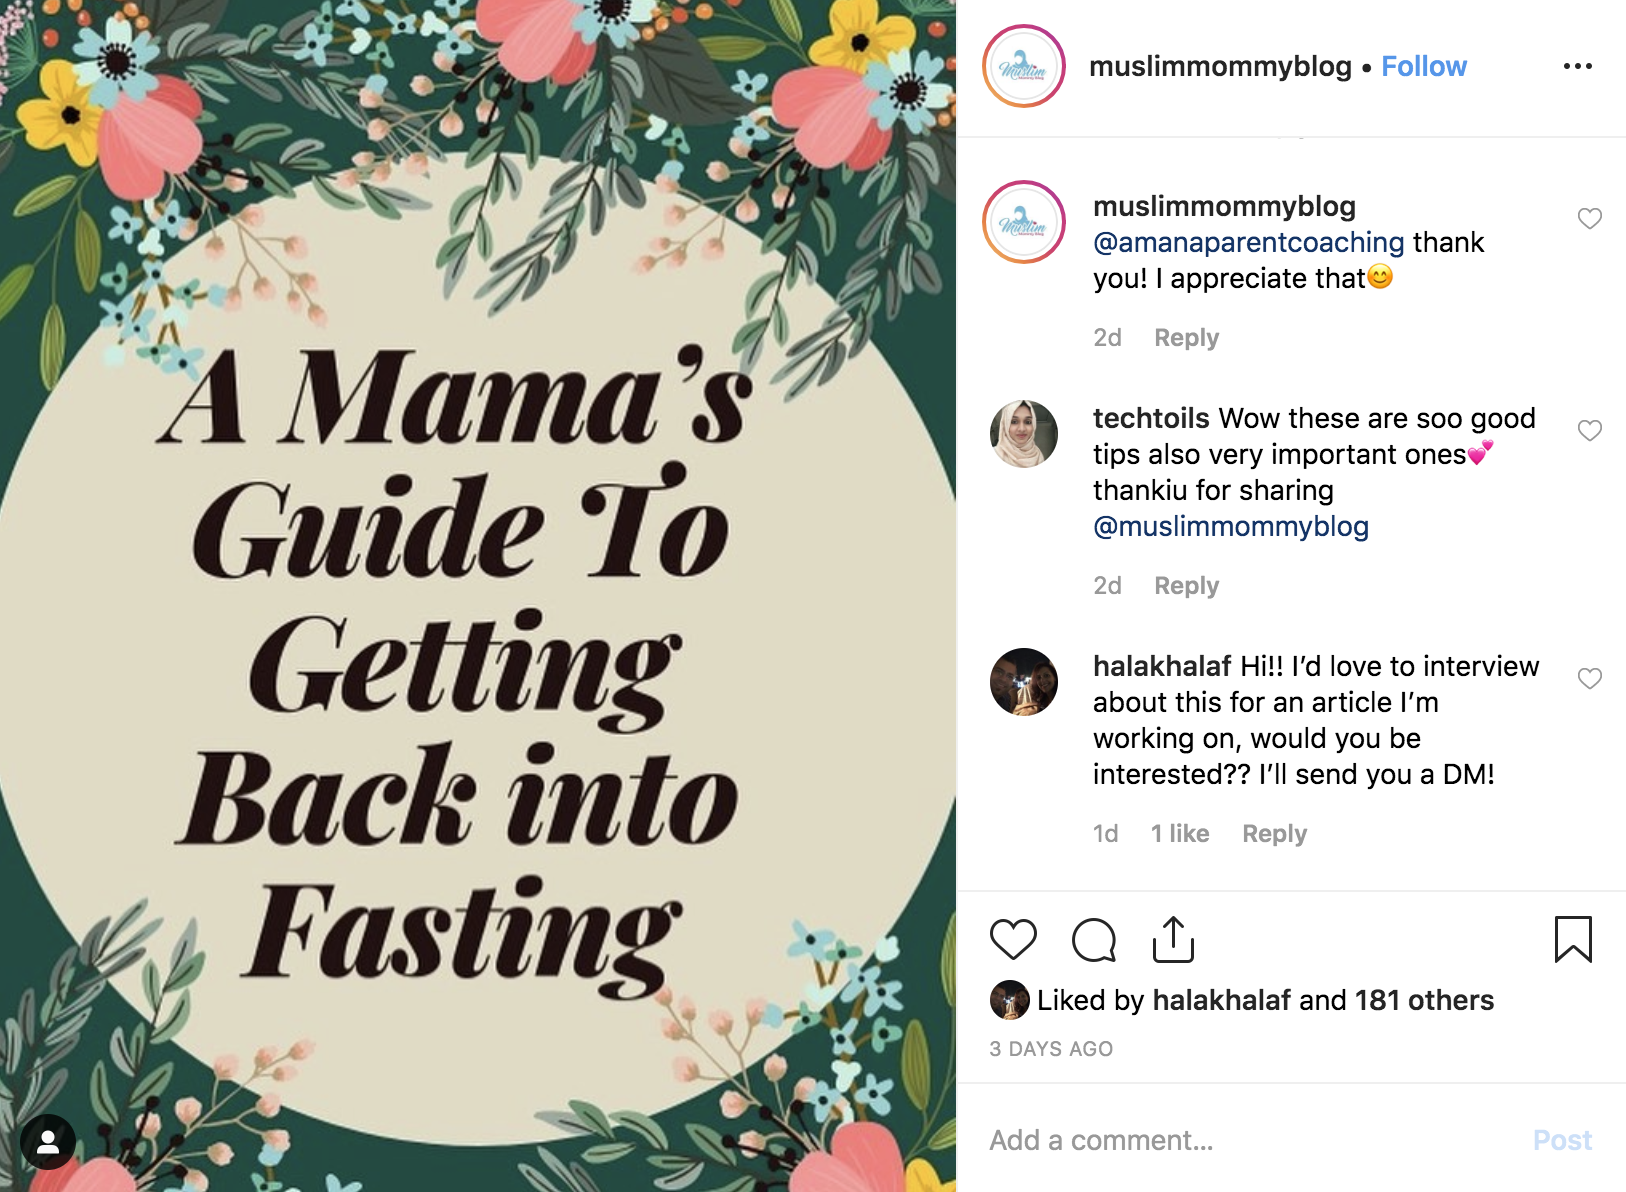 Muslim Mommy Blog